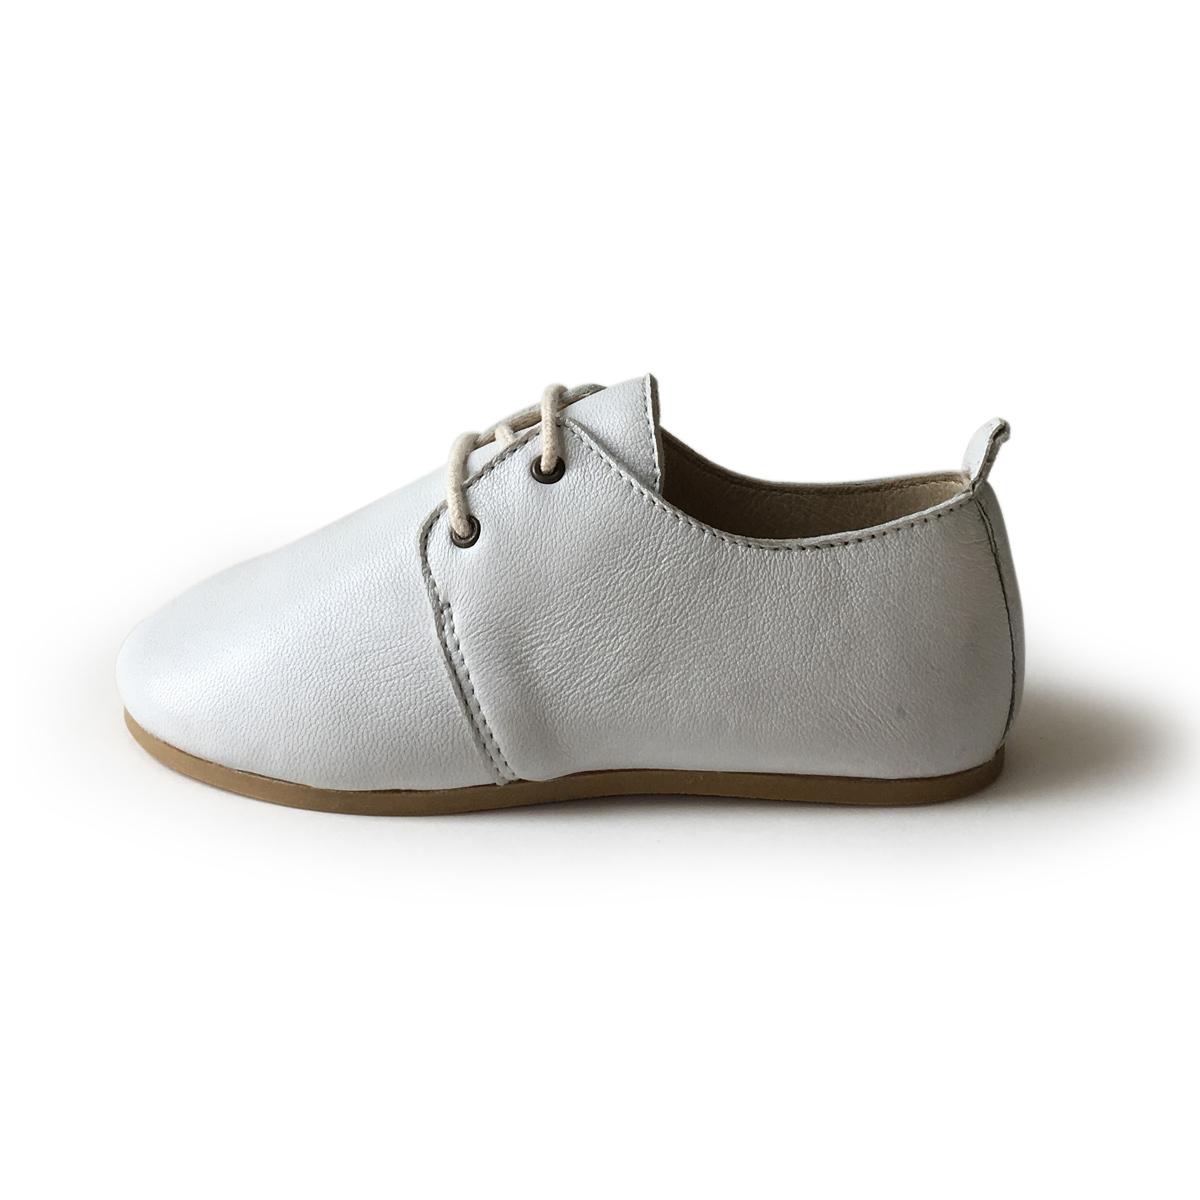 Chaussons & Chaussures Petit Paris Trend Blanc - Taille 26